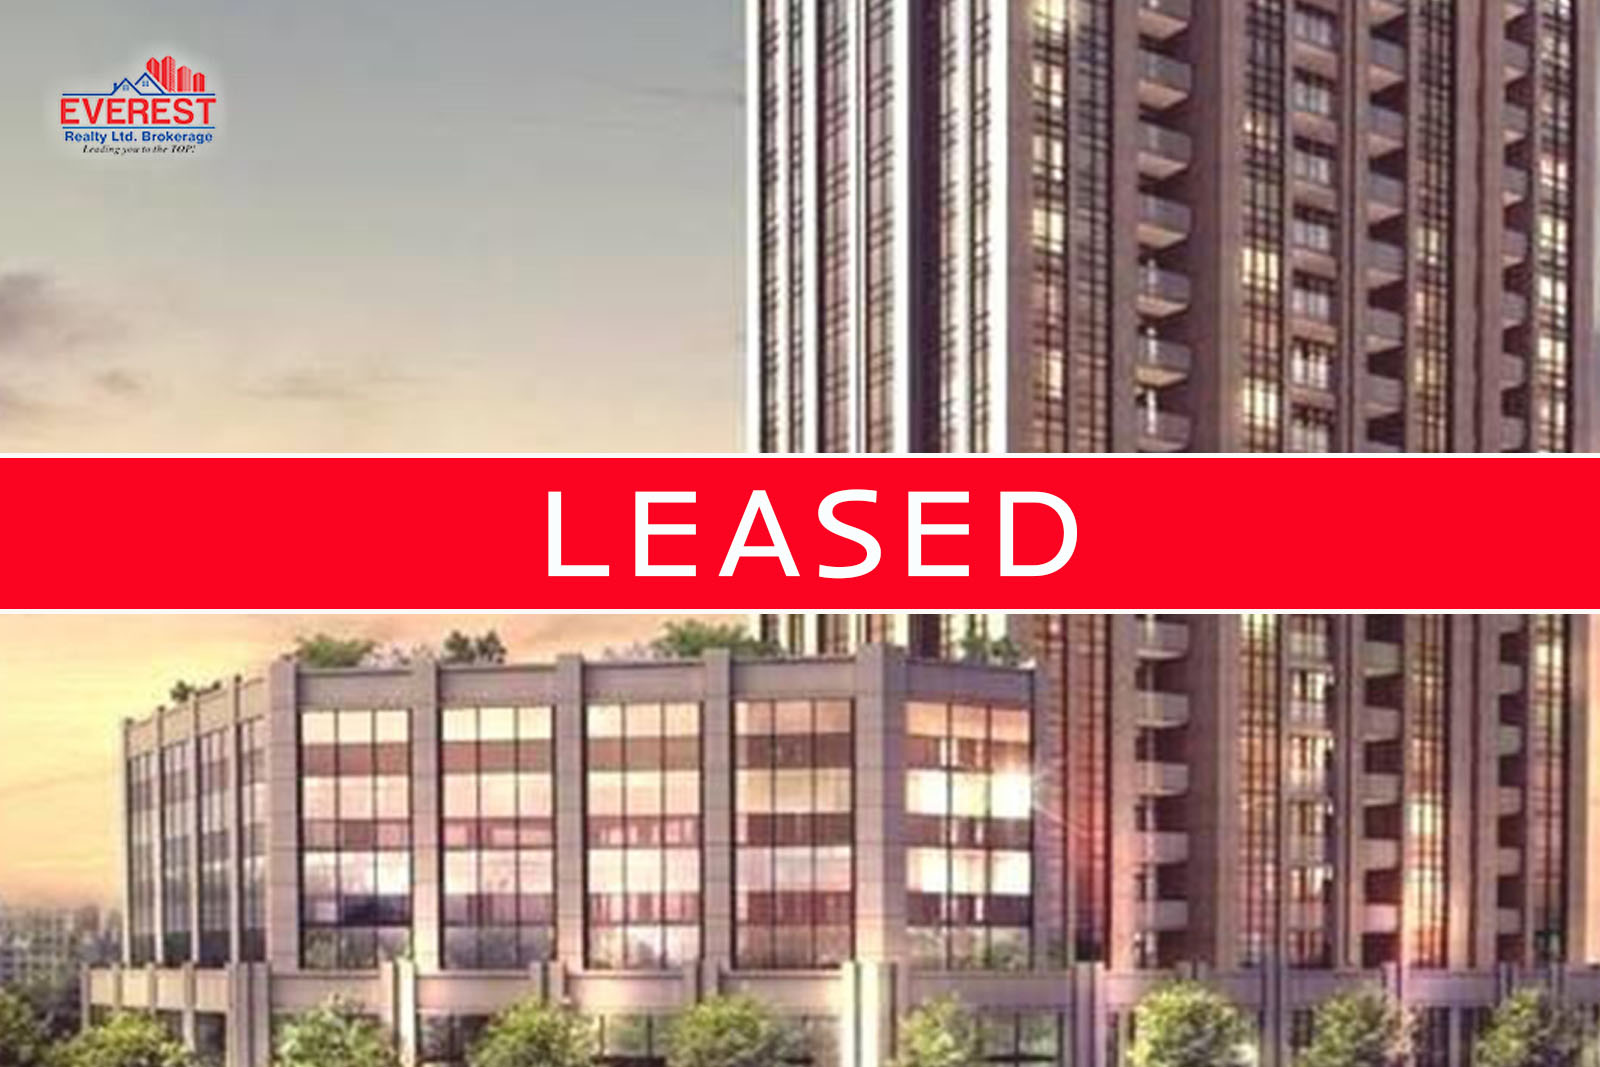 For Rent: #519 – 9085 Jane St, Vaughan